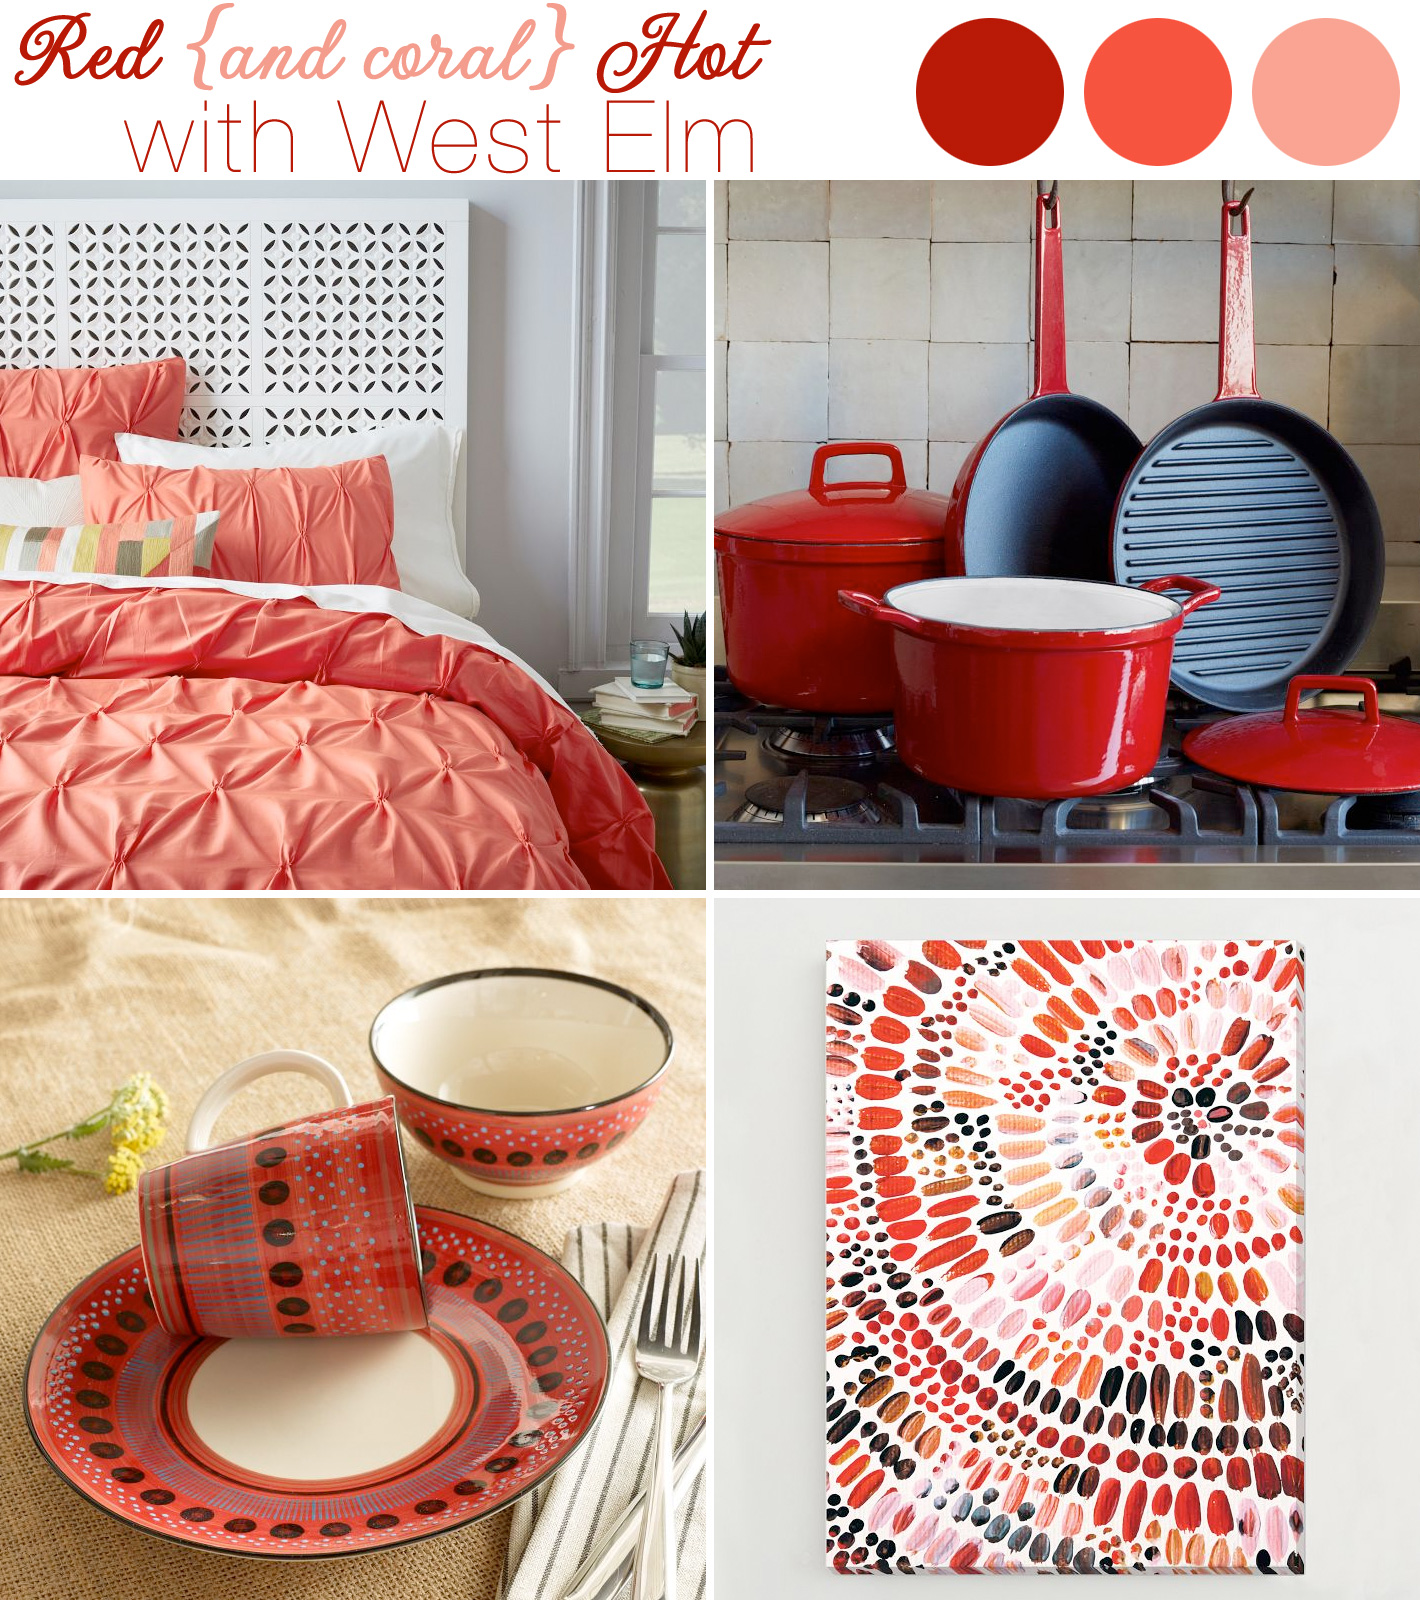 West Elm - creating your #newlywed home with their new #wedding + #gift #registry in red and coral colors